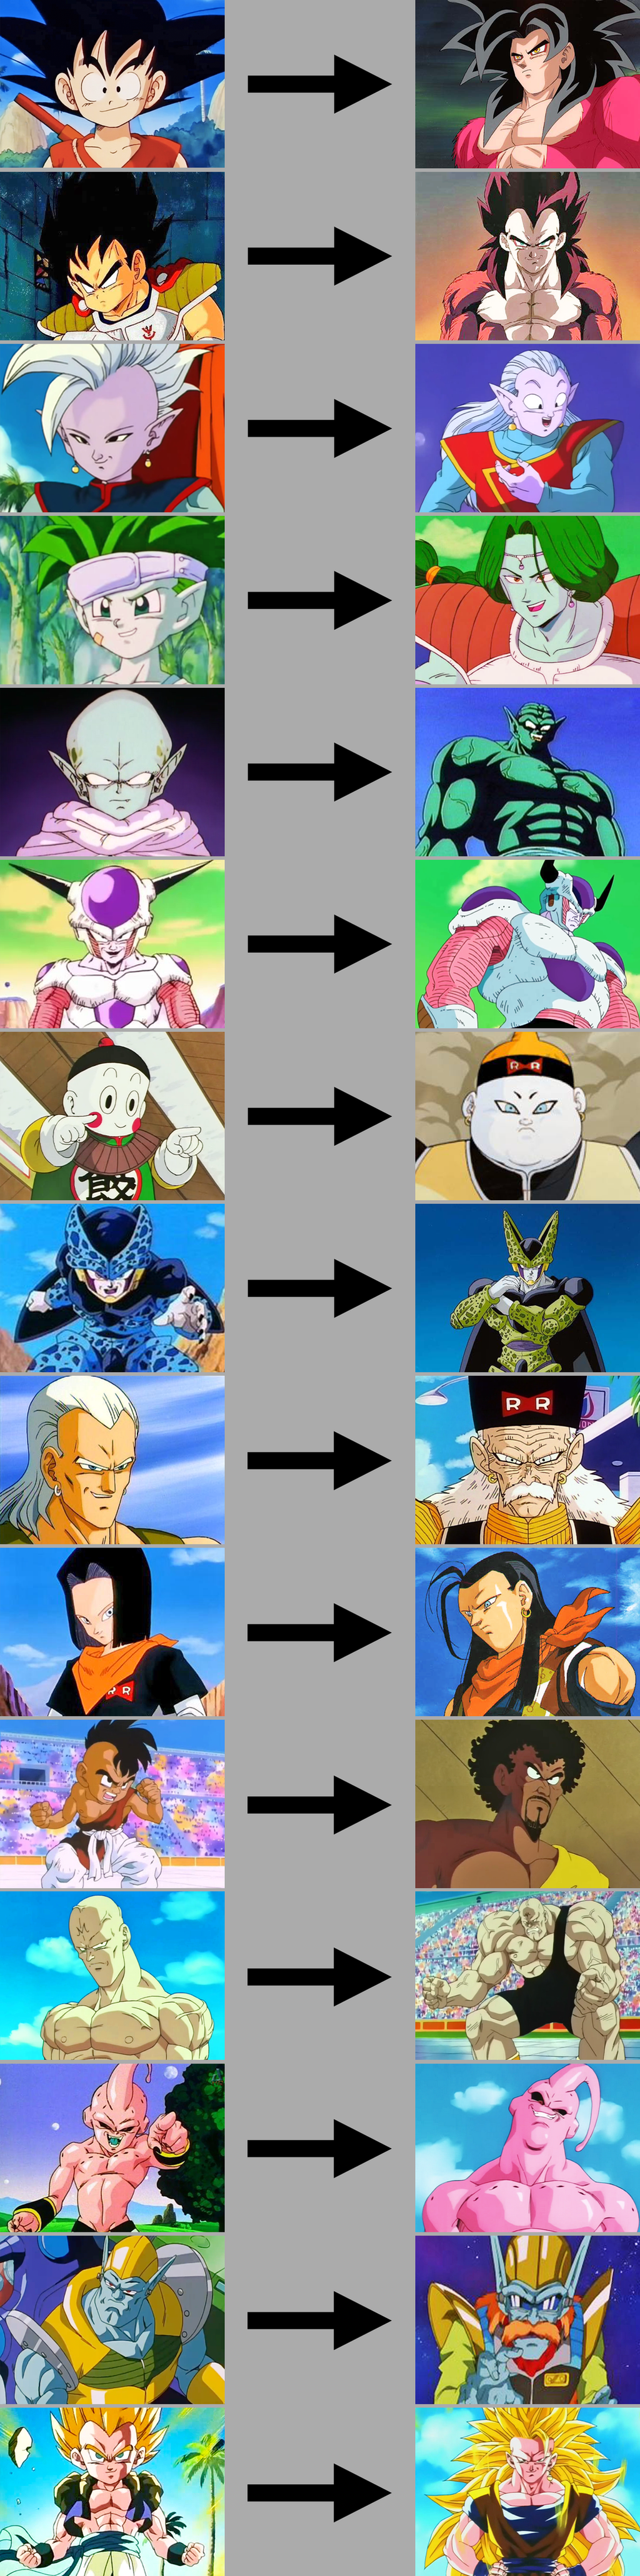 how to show characters aging